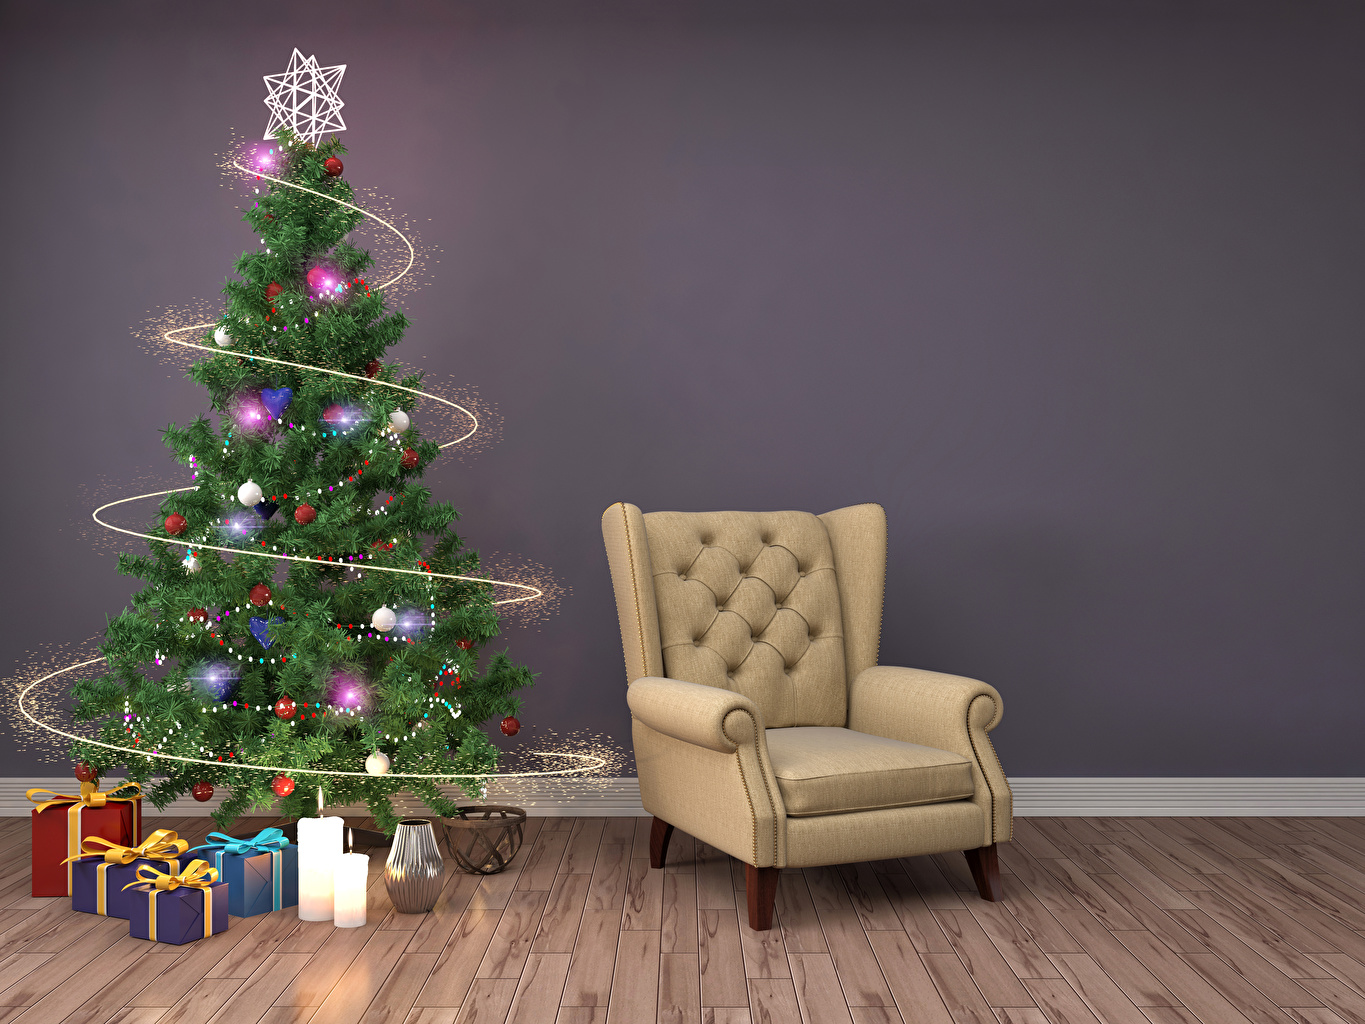 Stupendous Desktop Wallpapers New Year 3D Graphics Christmas Tree Inzonedesignstudio Interior Chair Design Inzonedesignstudiocom